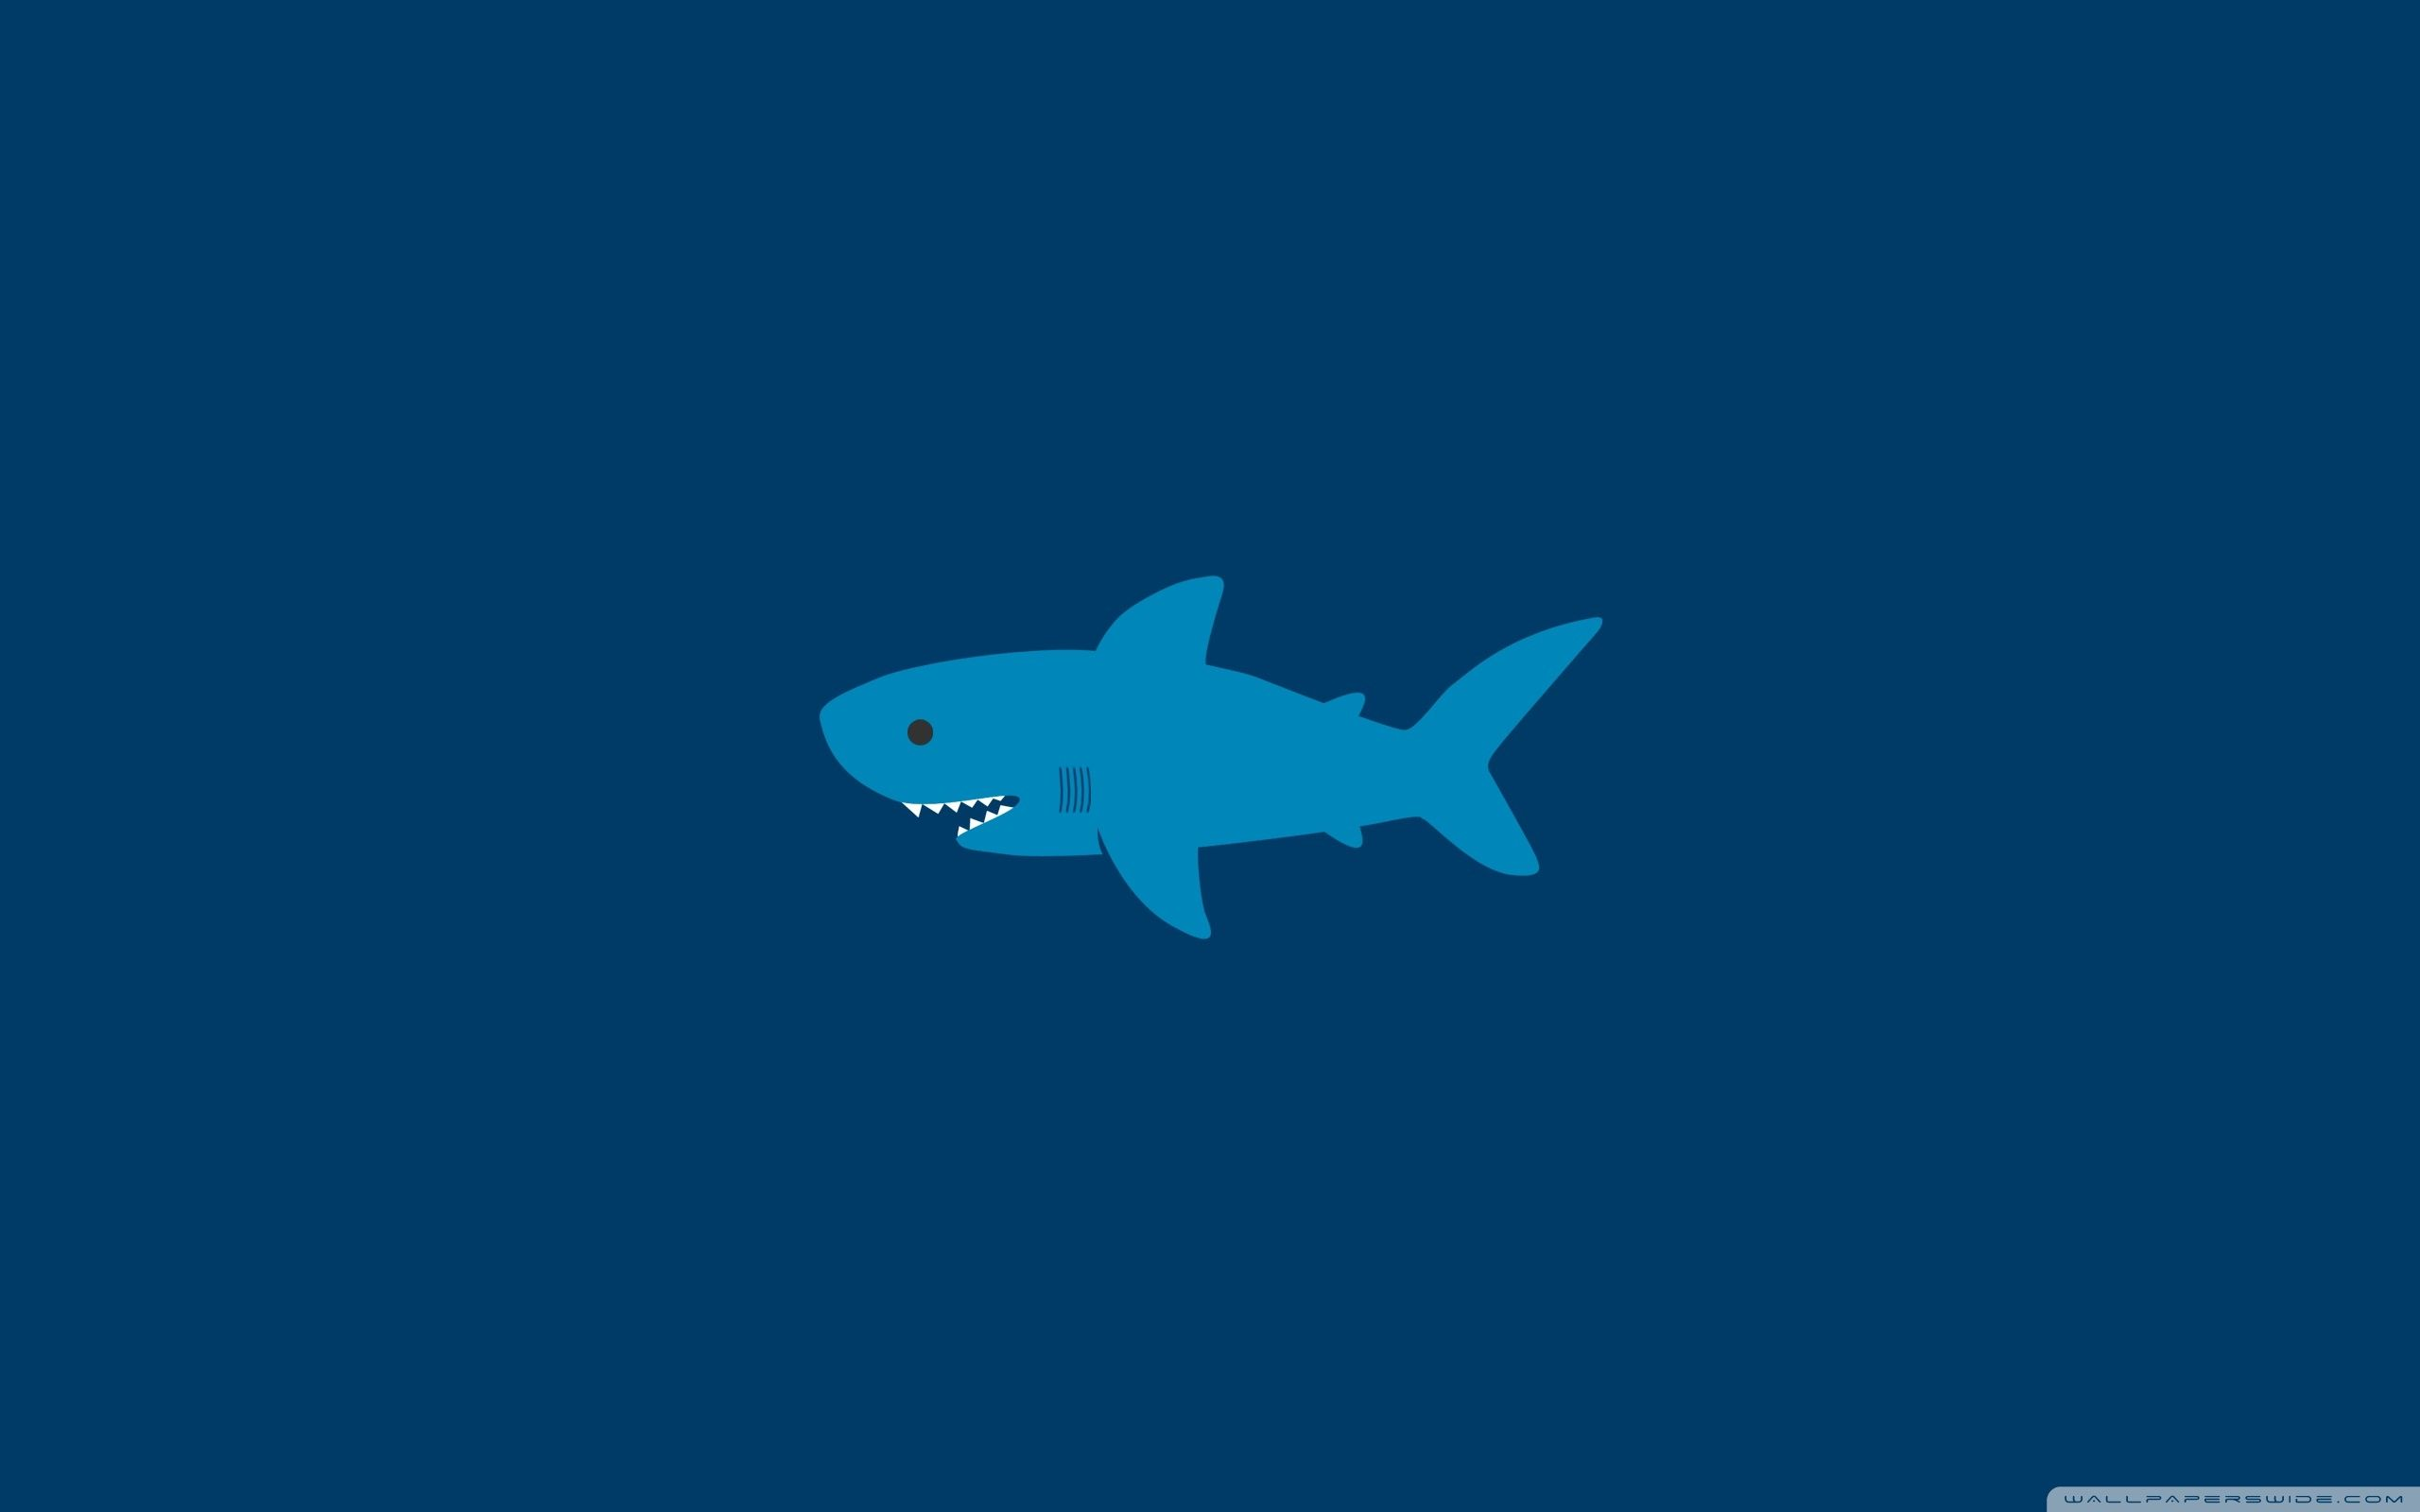 Cartoon Shark Wallpapers Top Free Cartoon Shark Backgrounds Wallpaperaccess